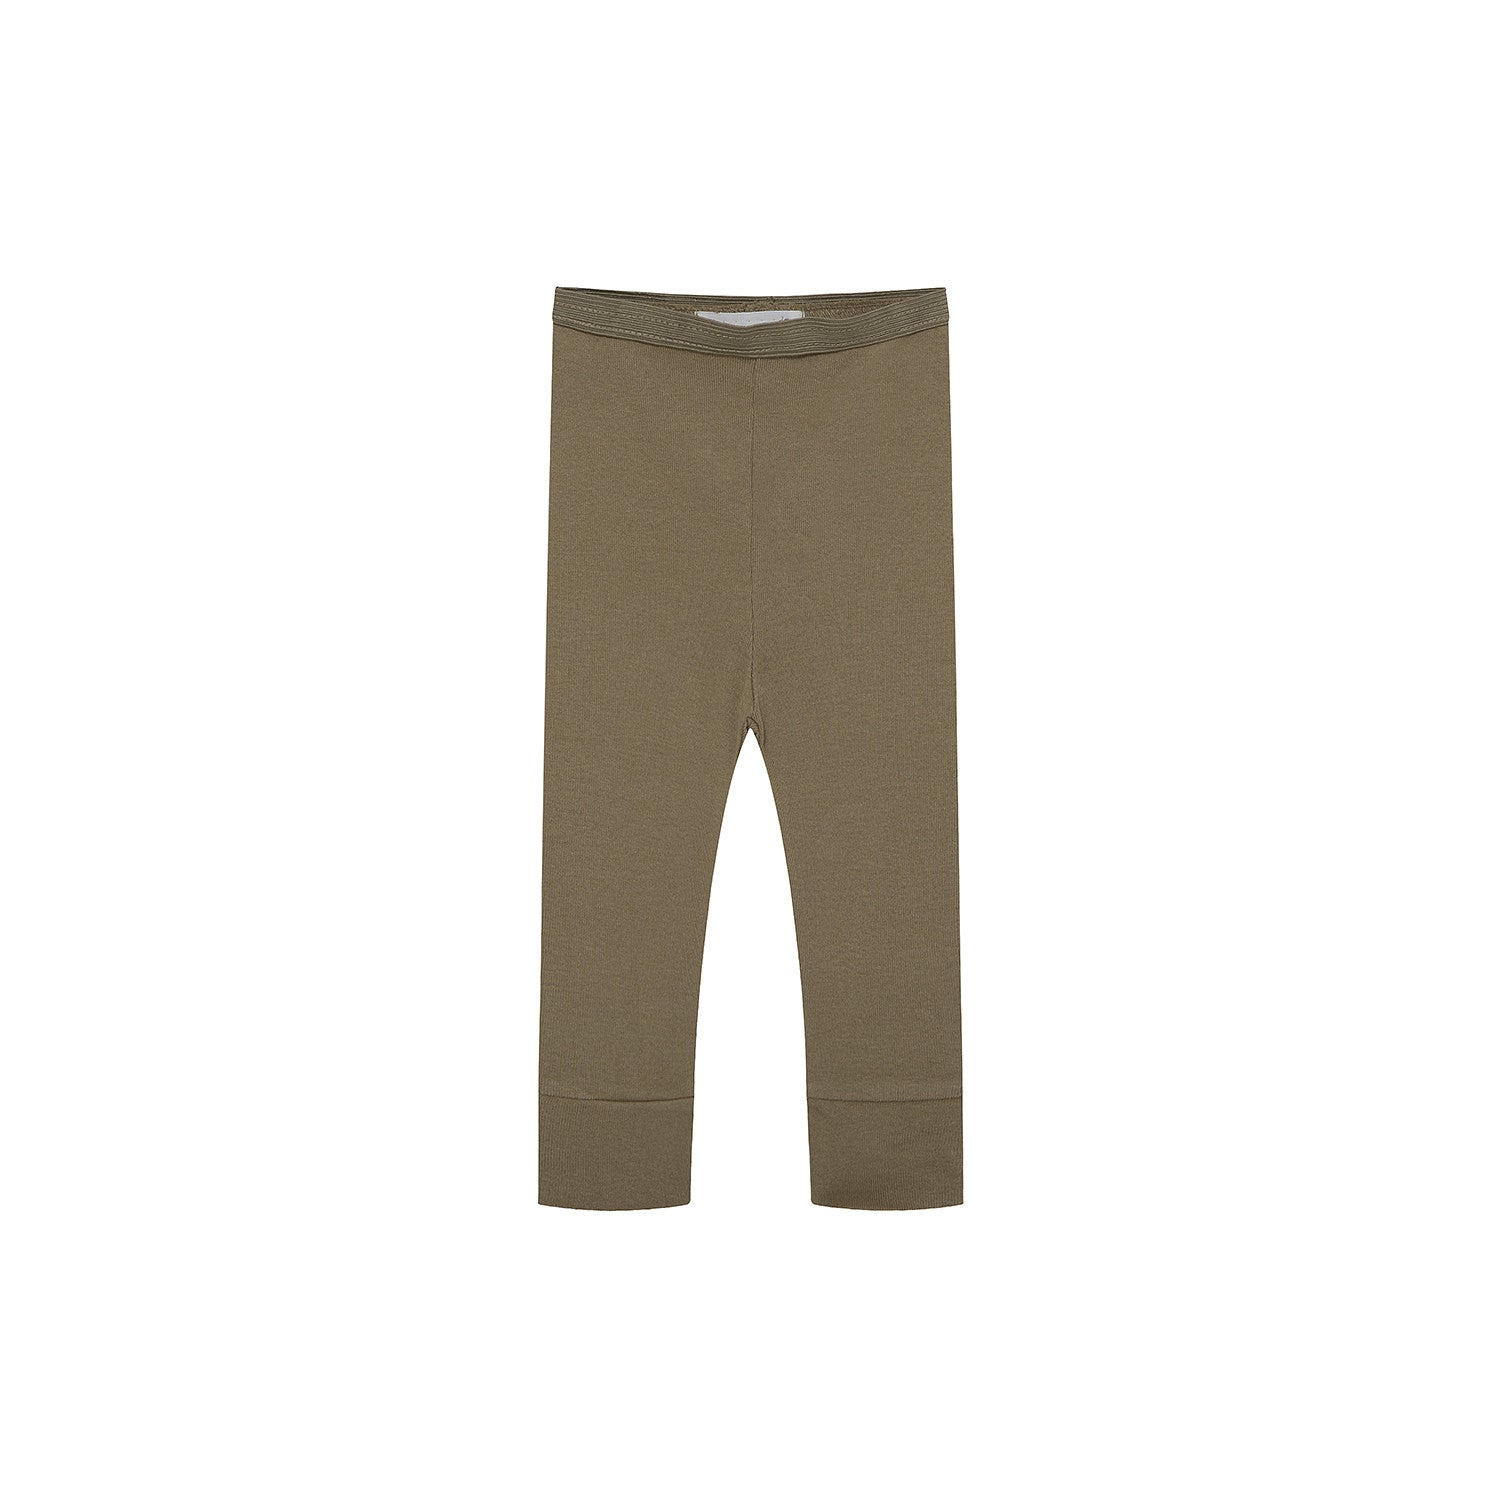 Bene Bene Khaki band Leggings